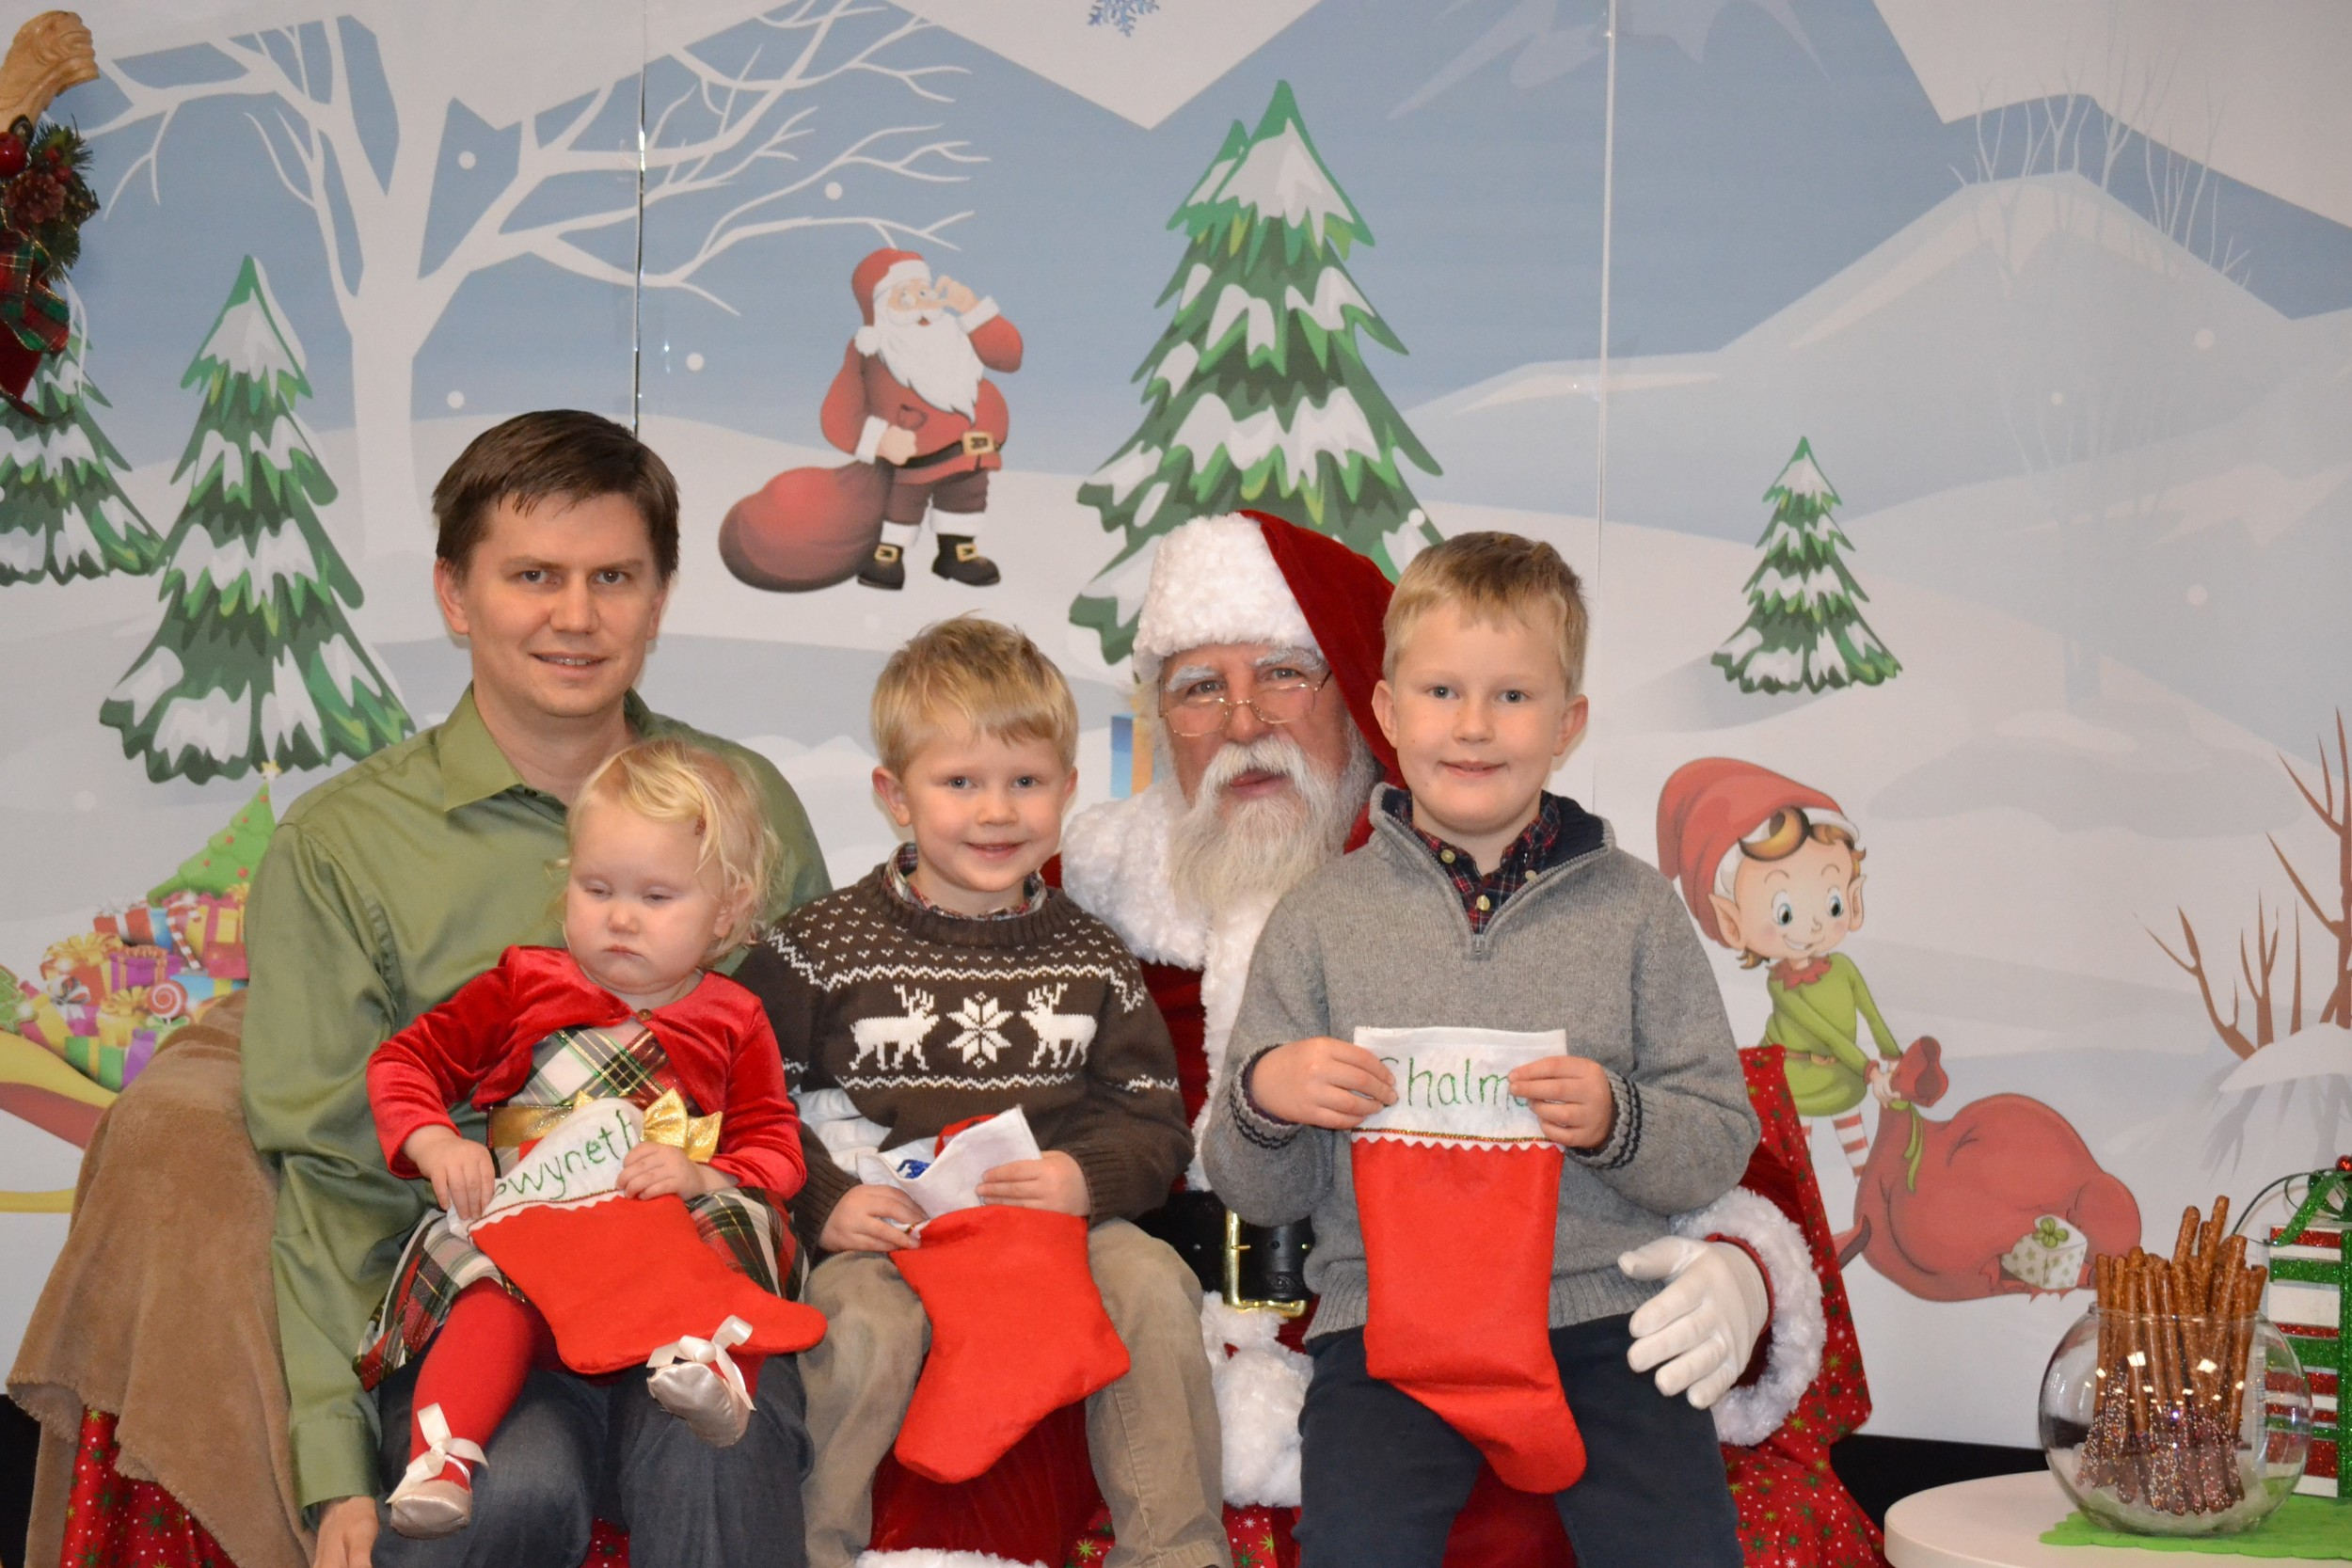 Employee with his 3 kids visiting Santa